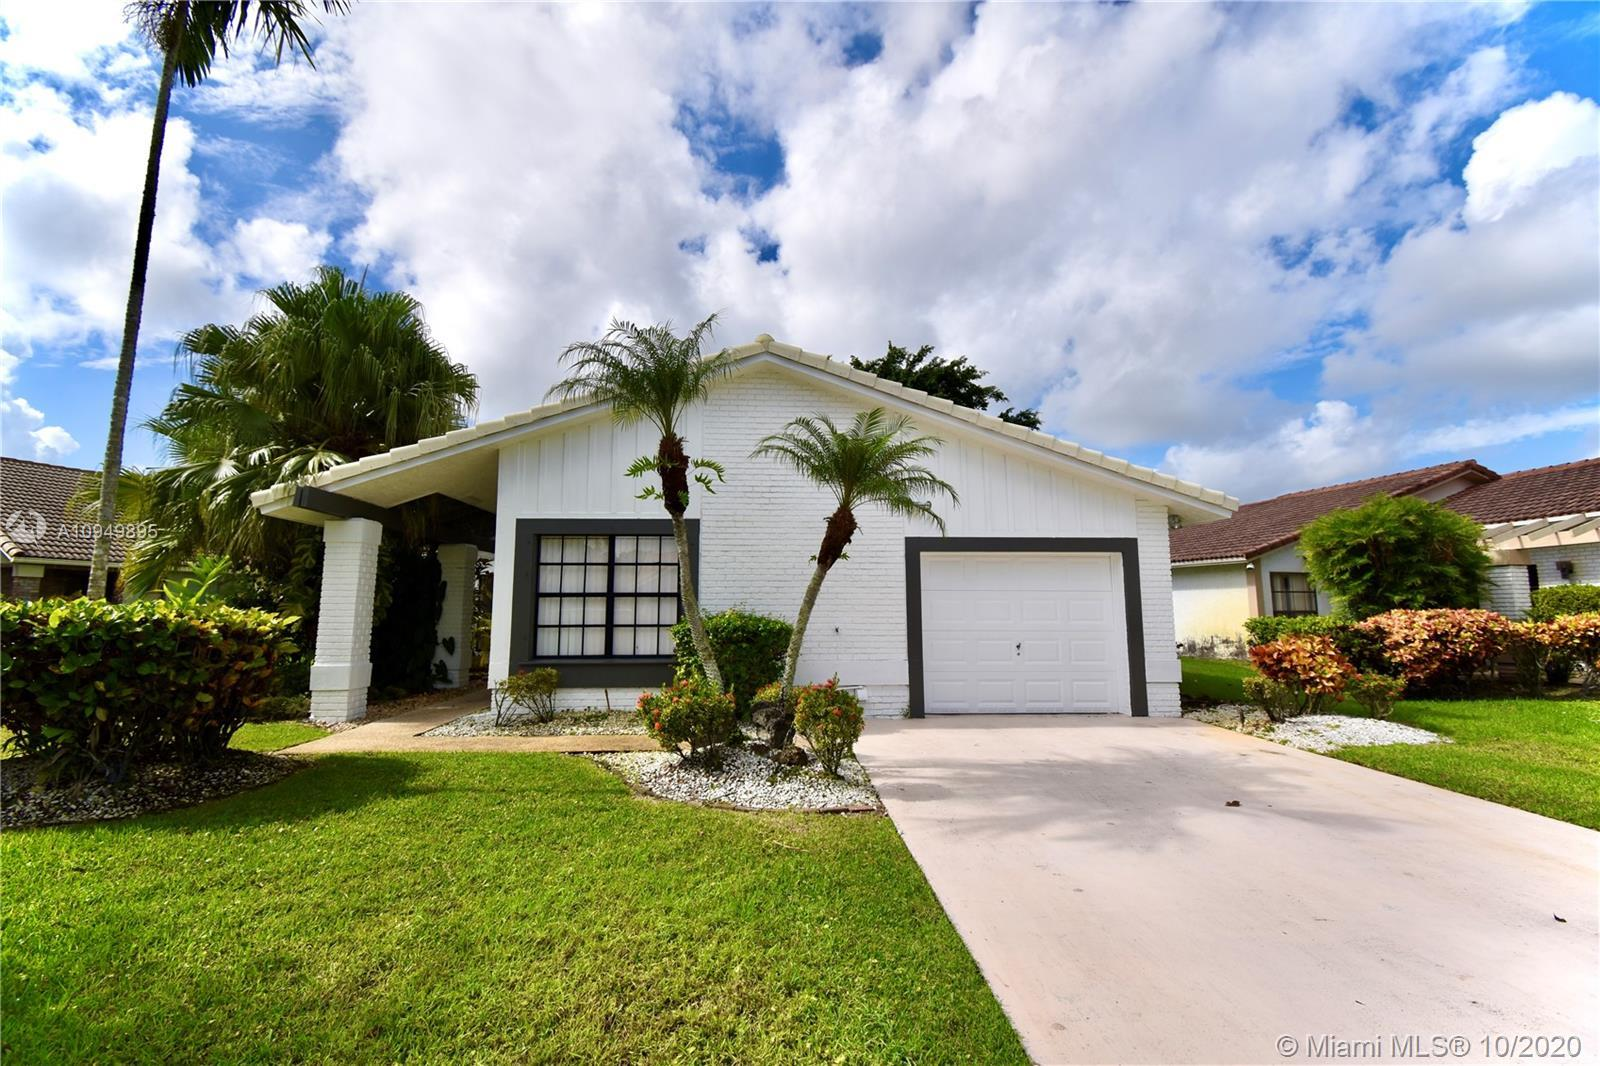 Make this beautiful one story property in Boca Greens your home. Great floor plan with an open livin